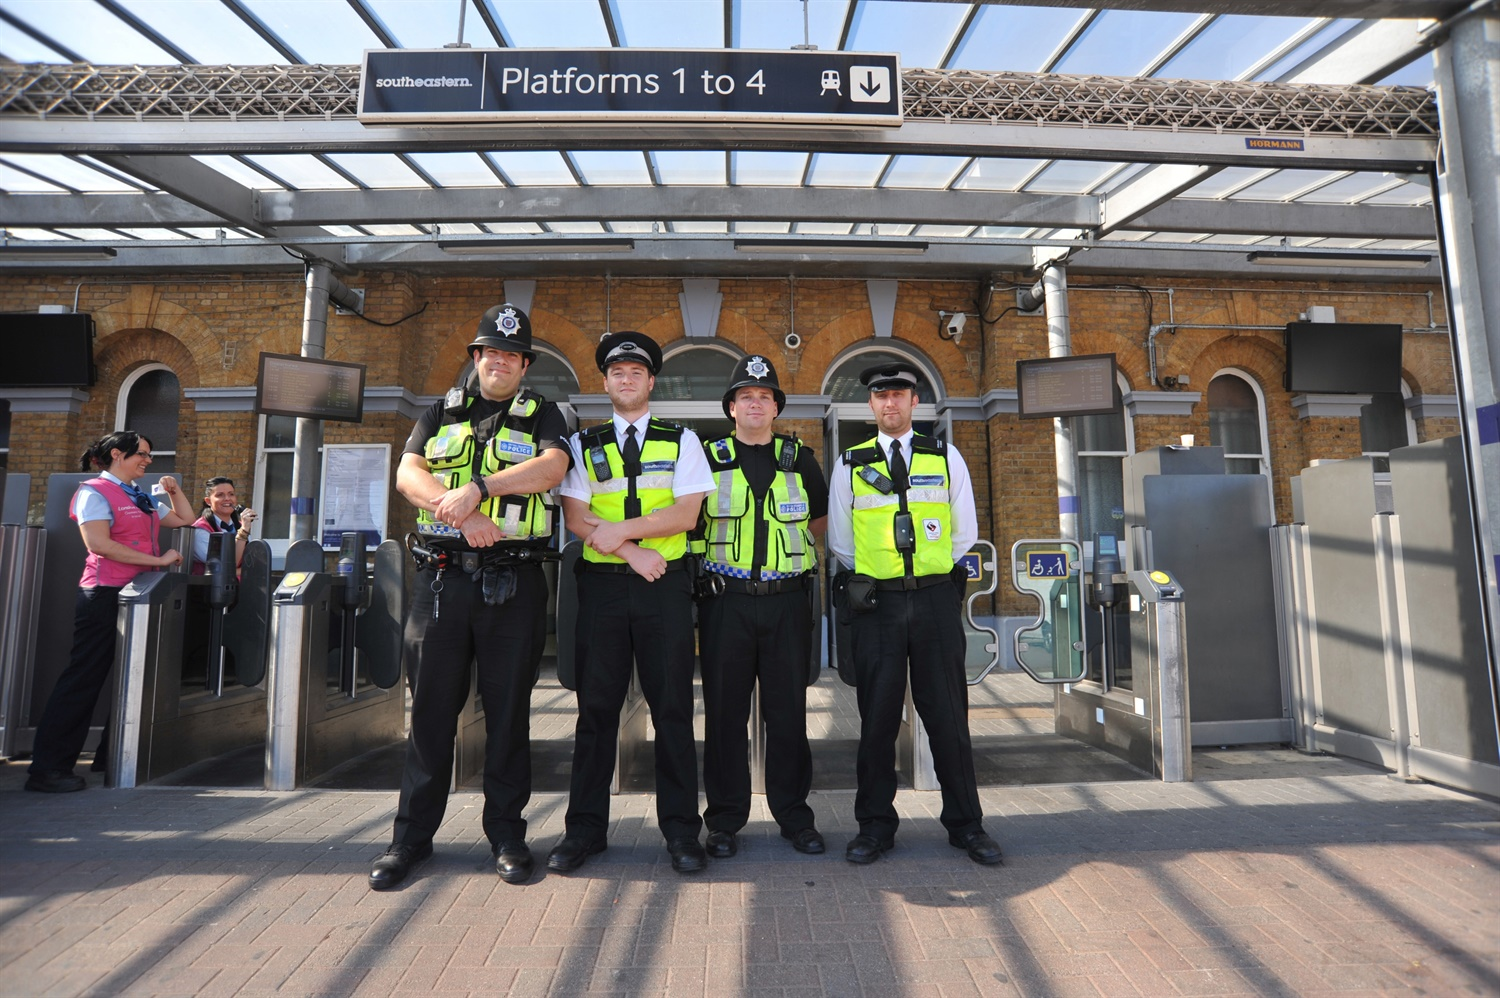 Recent security improvements on the UK's rail network